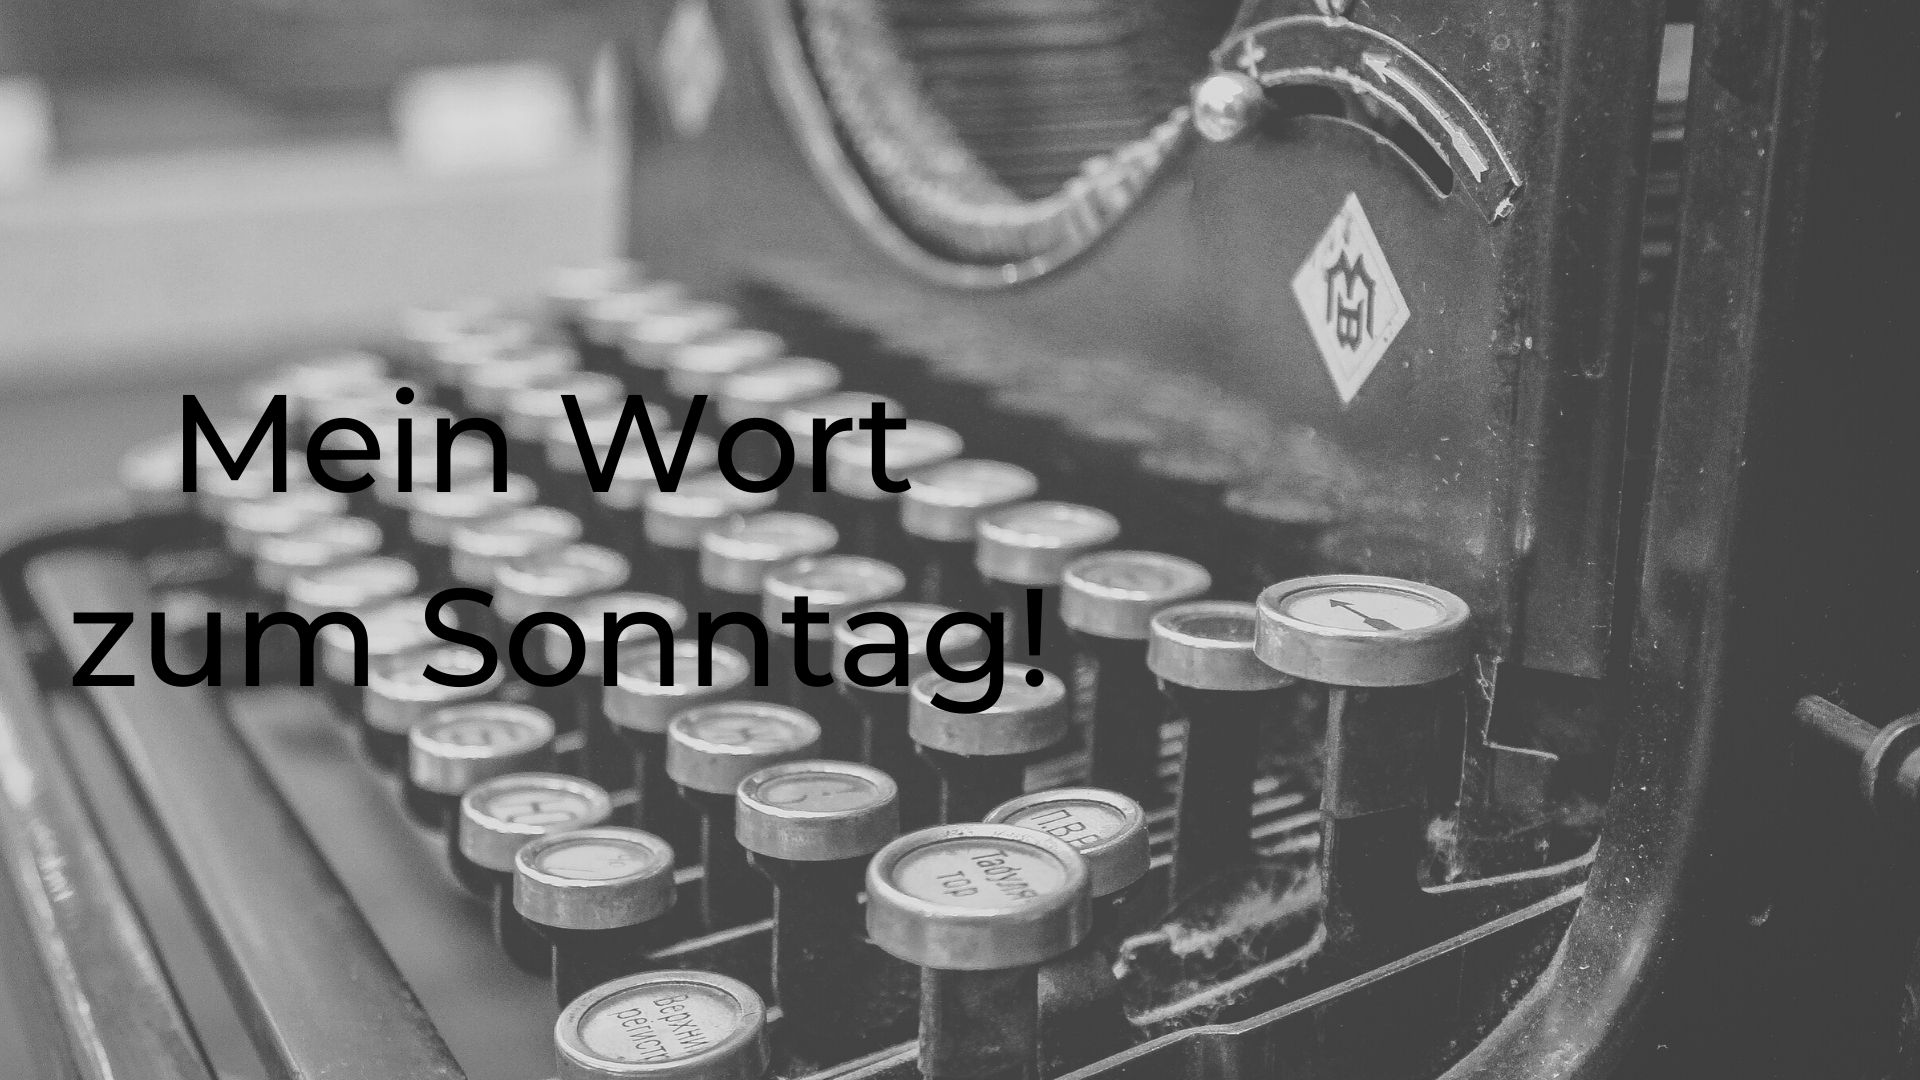 Wort z. Sonntag Folge 34, 2020 alles ist anders mit Corona!